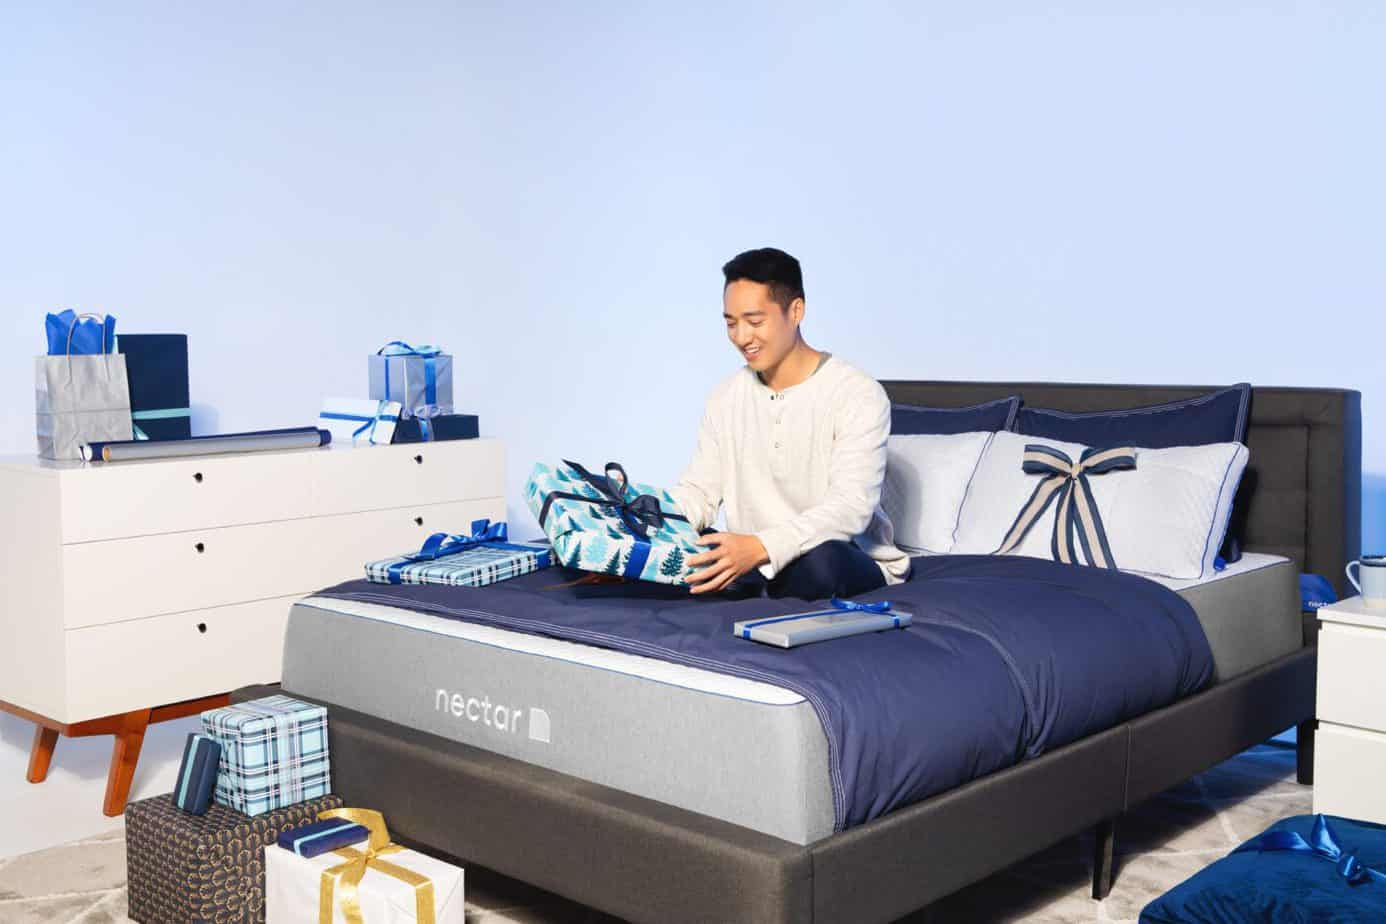 10 Best Times Of Year To Save Big On A Mattress (Plus More Secrets to Save)